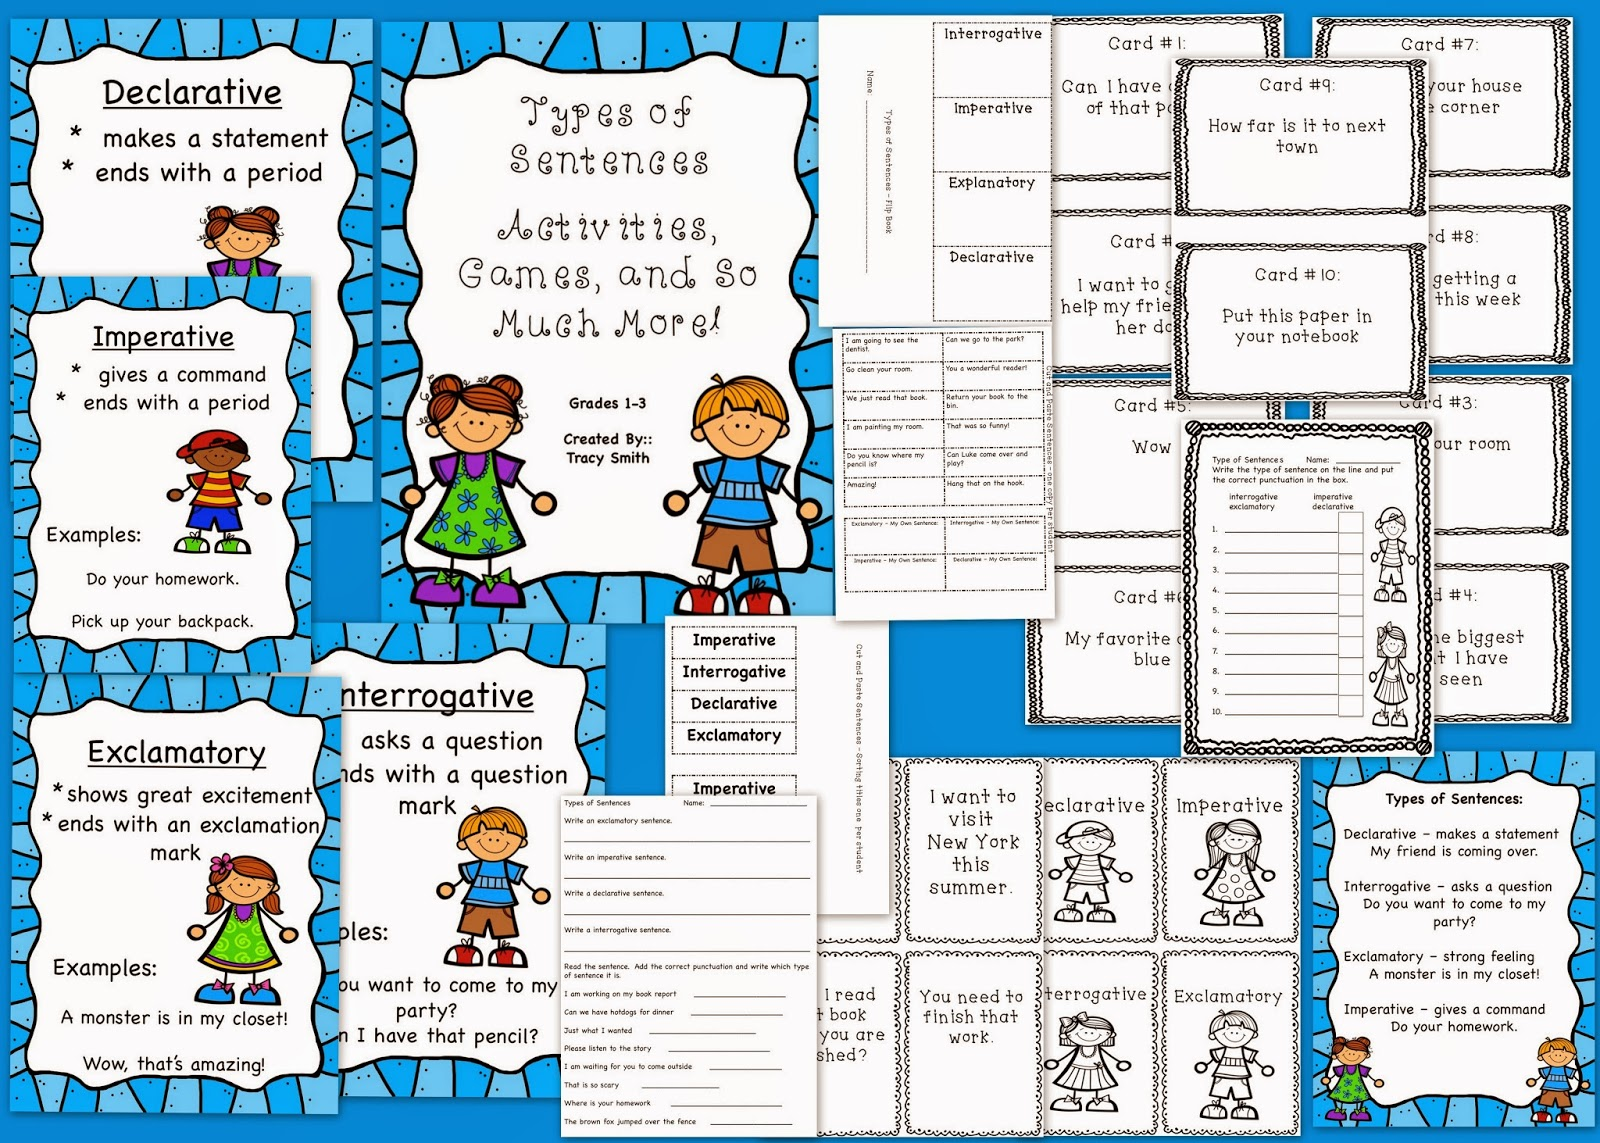 http://www.teacherspayteachers.com/Product/Types-of-Sentences-Grades-1-3-Common-Core-Aligned-1041255